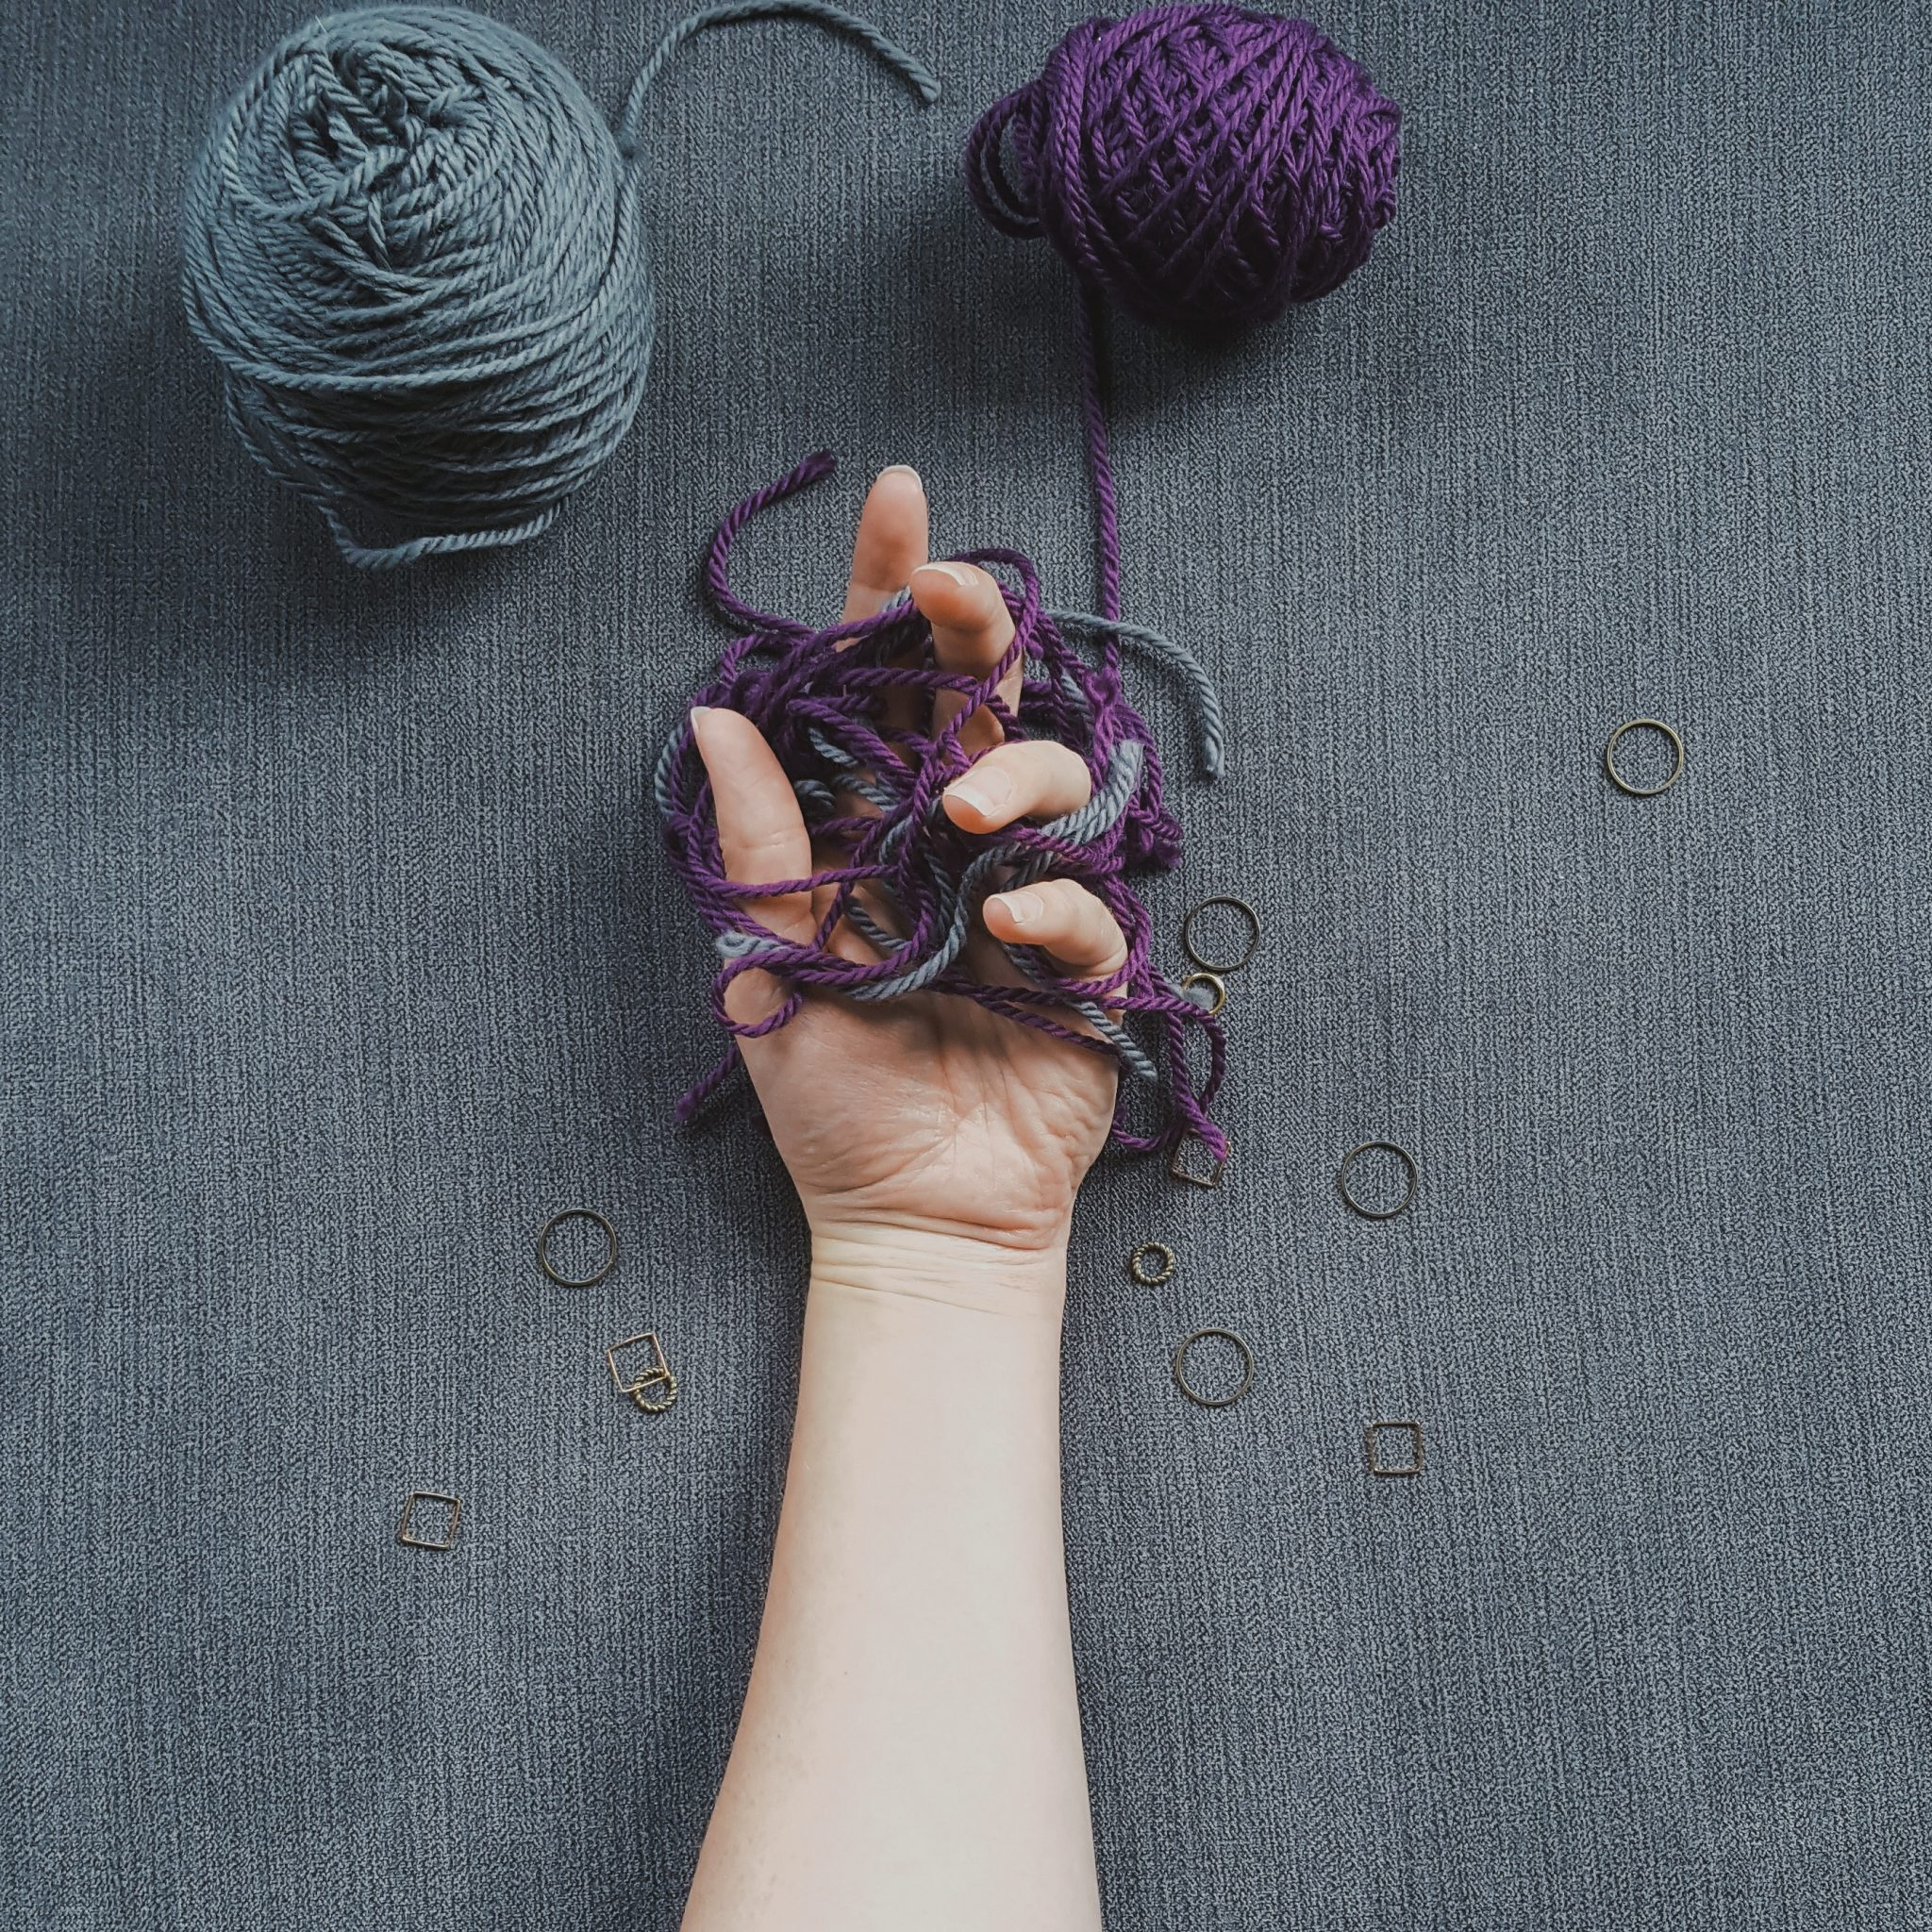 Craft | Frog or Finish – When to Rip Those Handknit Projects into Something New